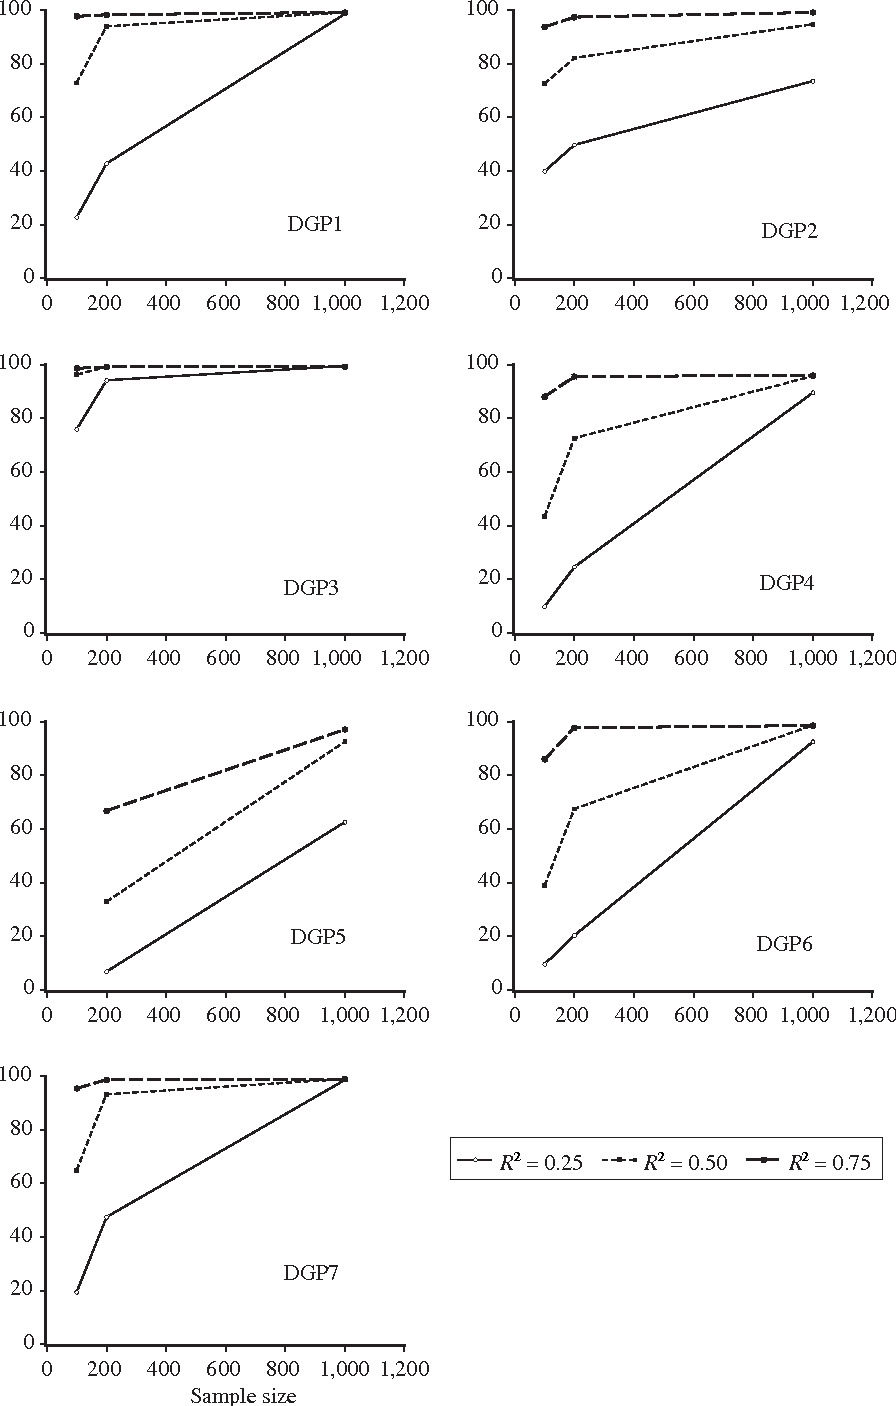 Figure 1. Percentages of successful retrieval of the DGPs by RETINA for different DGPs, sample sizes and R2s